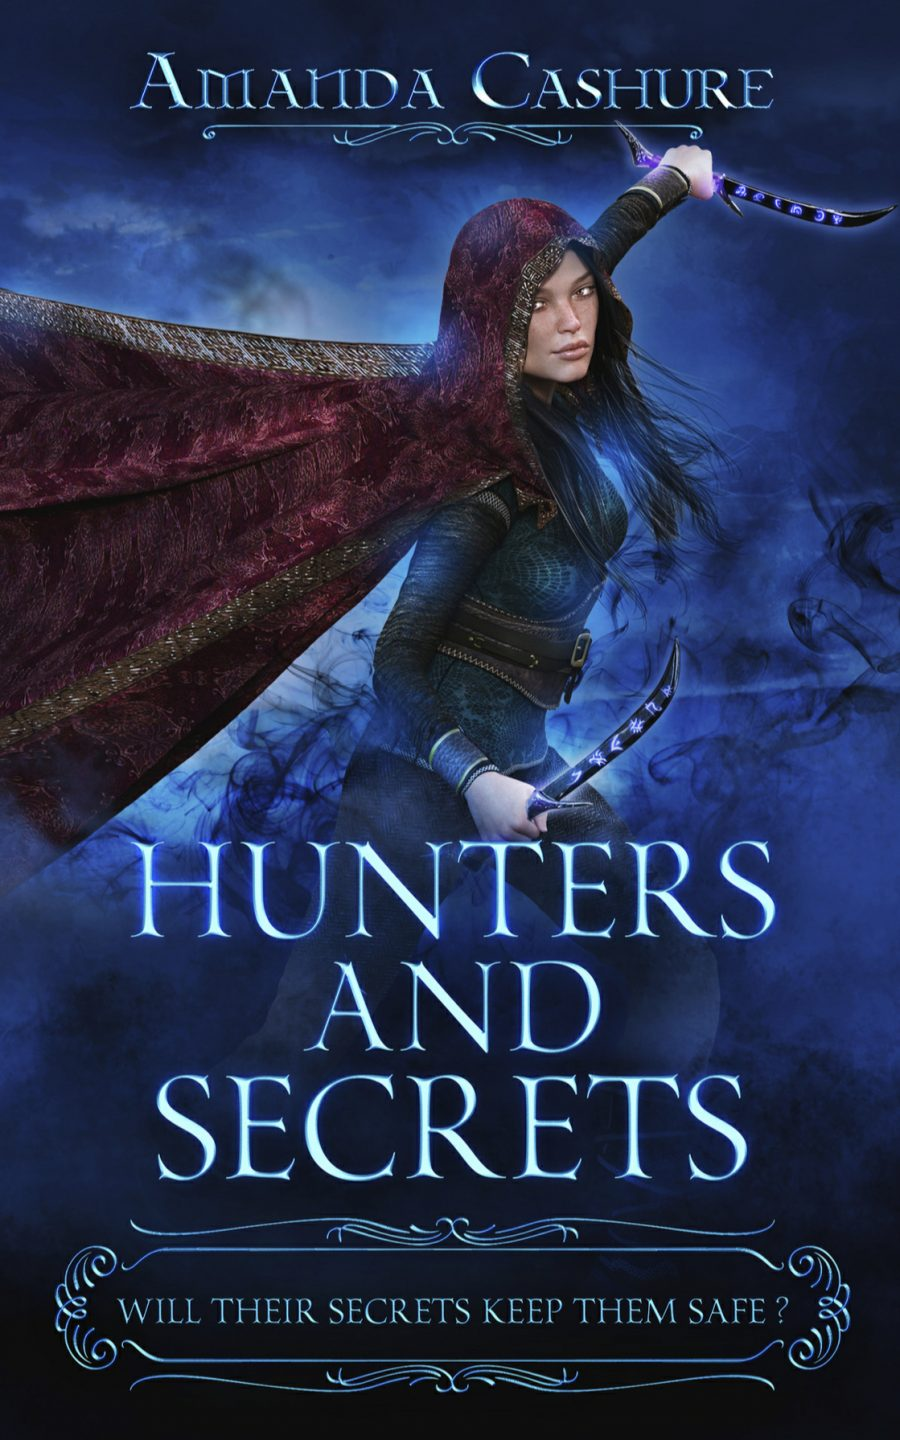 Hunters and Secrets (Book 1) by Amanda Cashure - A Book Review #BookReview #Fantasy #SlowBurn #RH #SlowBuild #Dark #KindleUnlimited #KU #5Stars